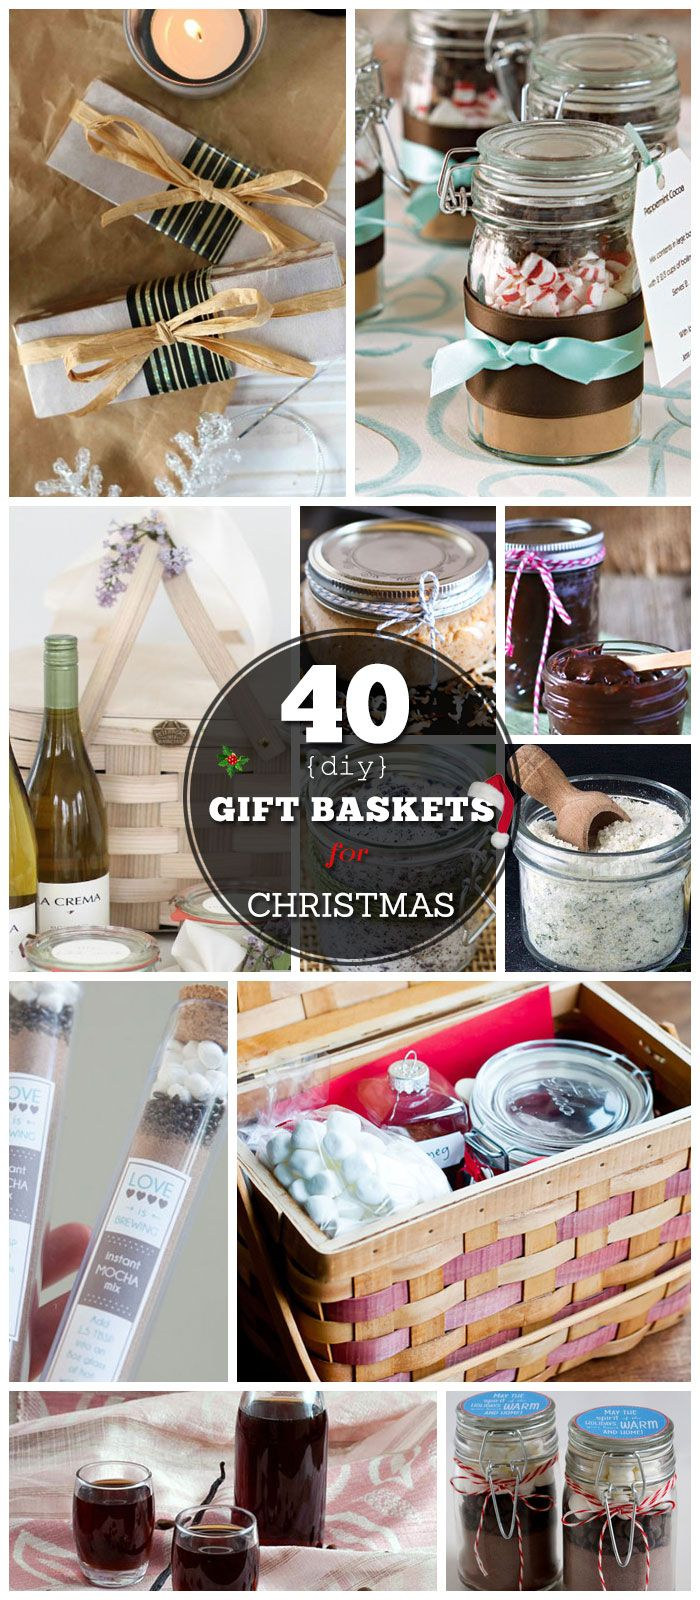 DIY Gifts : 40 DIY Gift Basket Ideas for Christmas | Handmade Gift ...